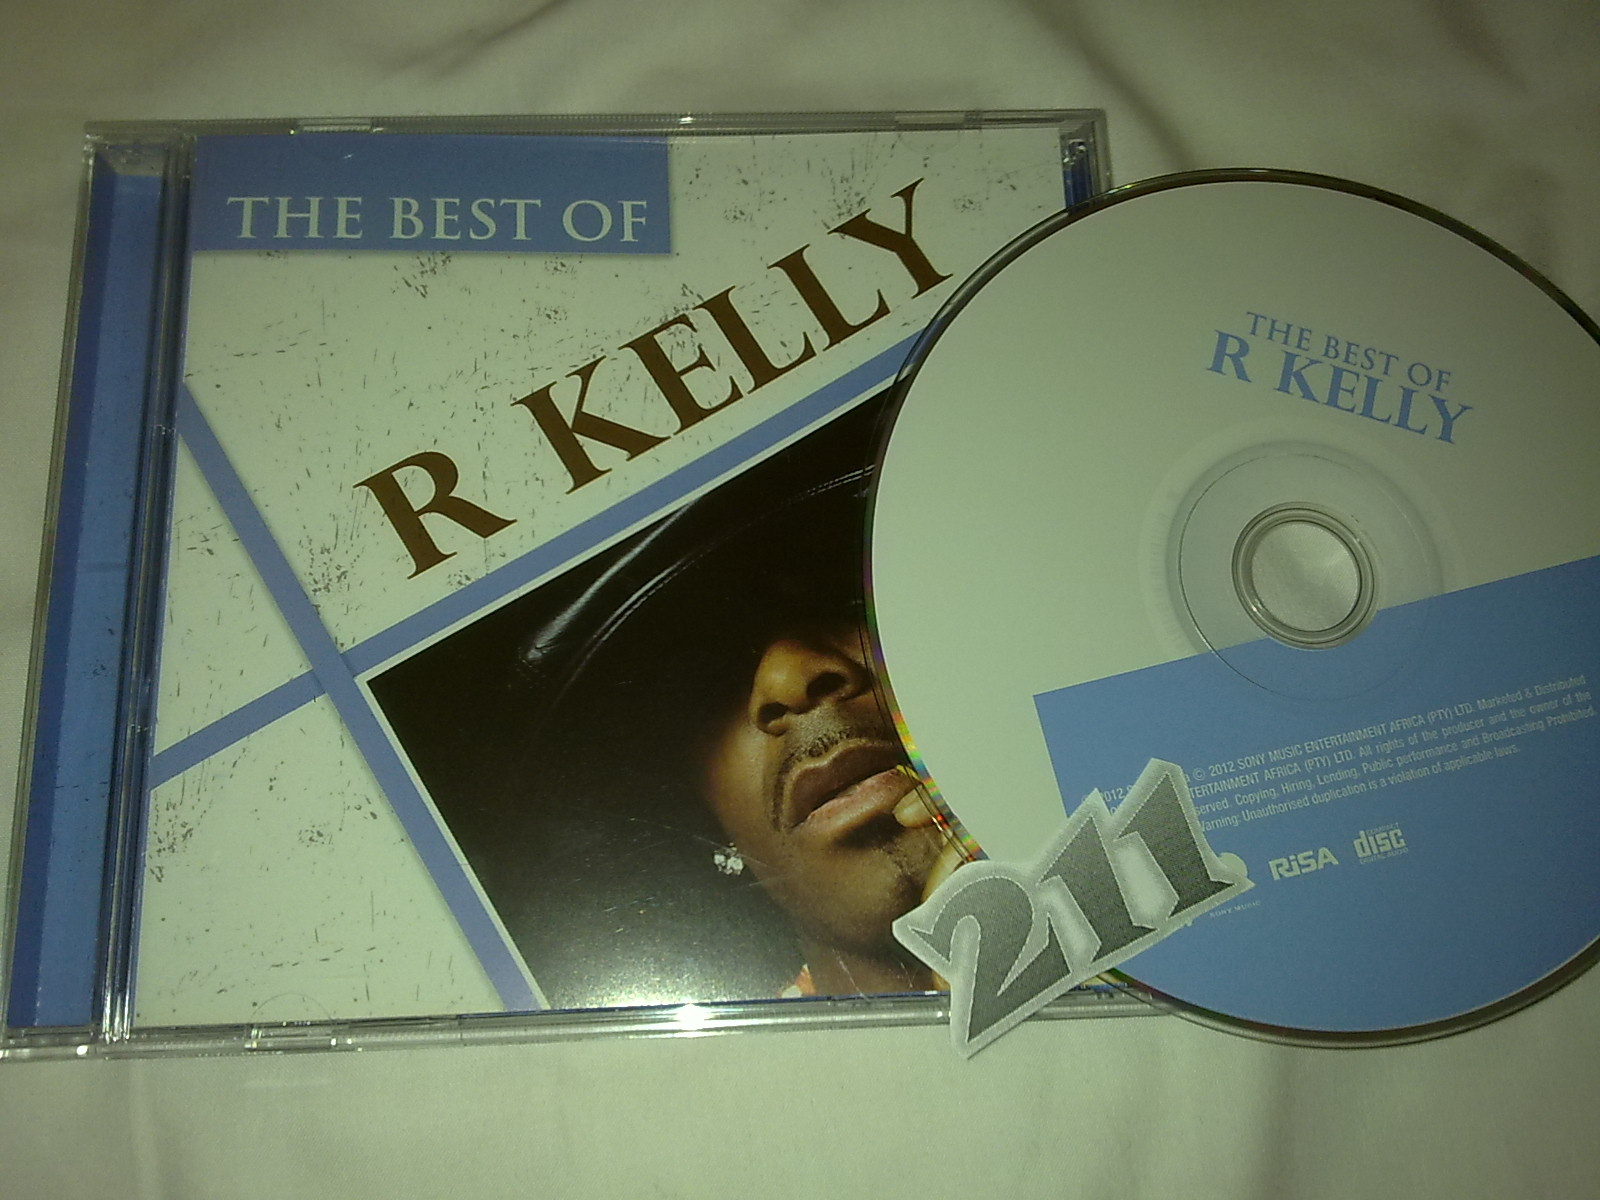 R Kelly - The Best Of (2012) [FLAC] [MULTI]